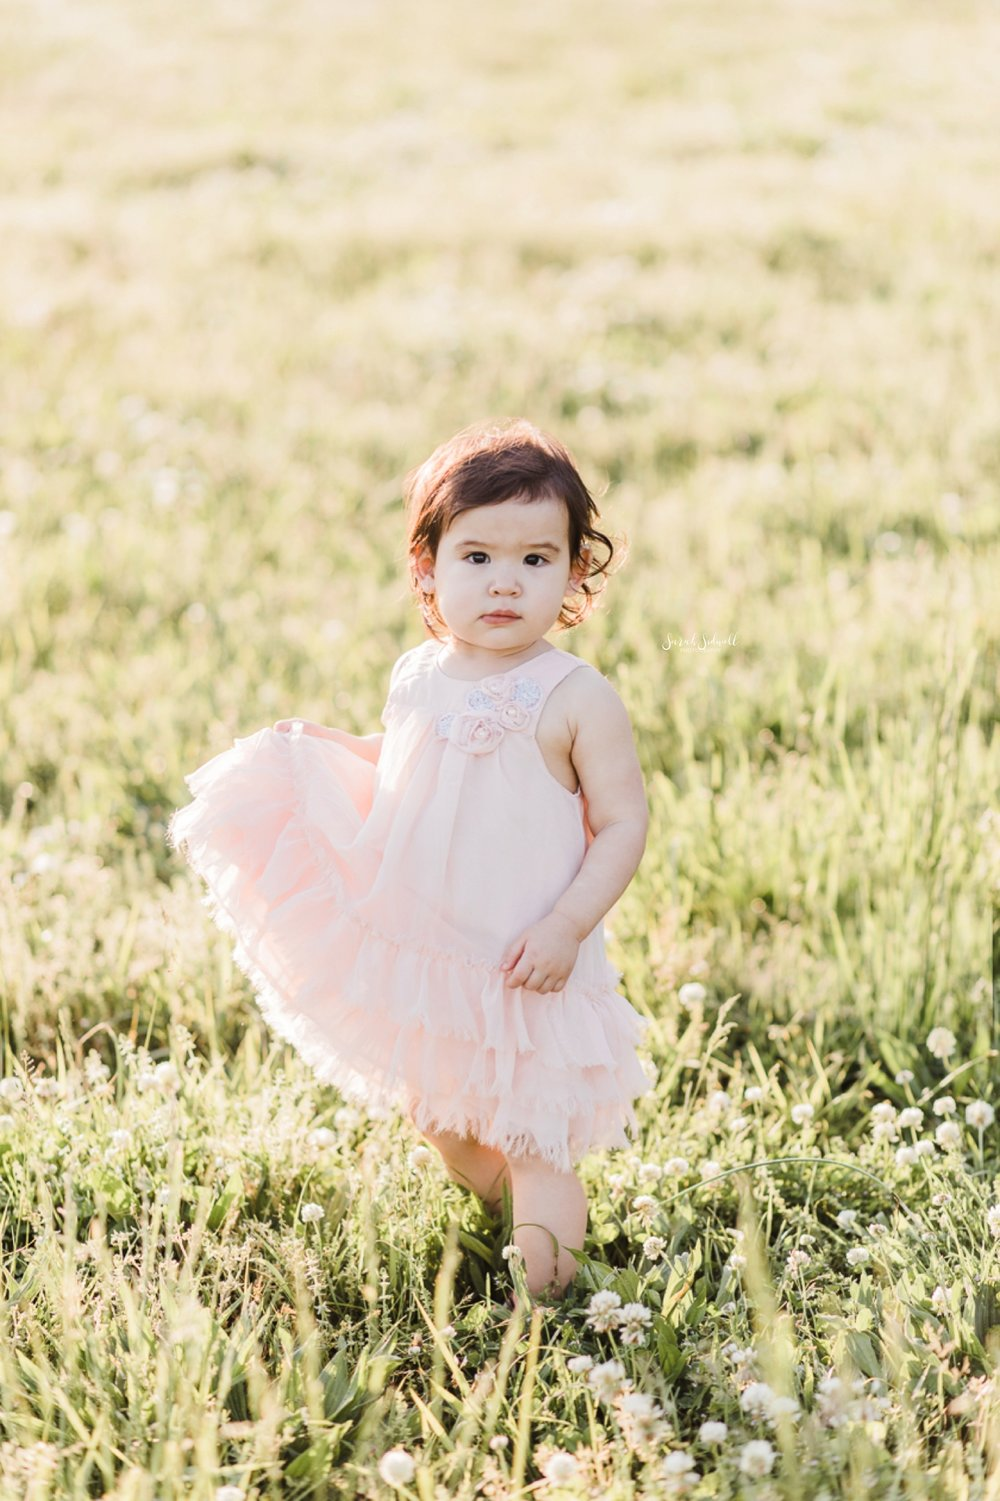 A toddler holds her pink dress in her hands as she walks.